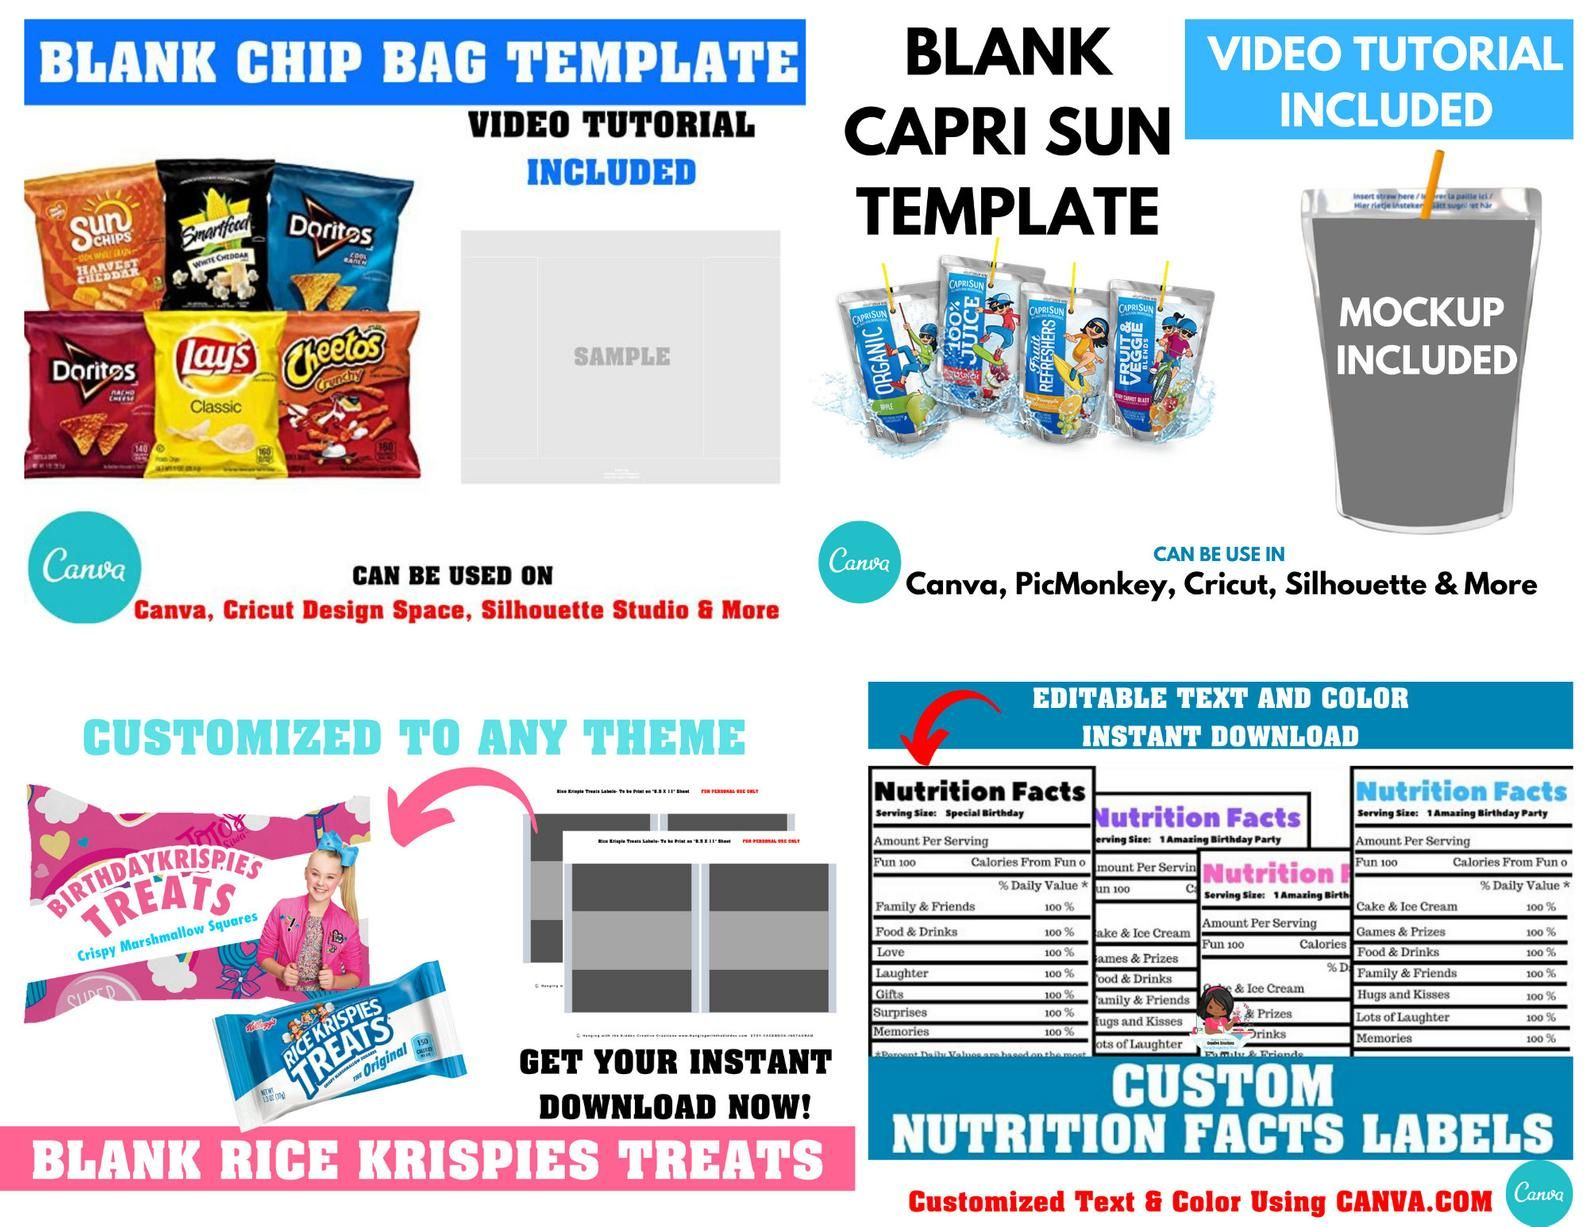 Save Blank Template Bundle Chip Bag Templaterice Krispies Etsy In 2020 Label Templates Chip Bags Capri Sun